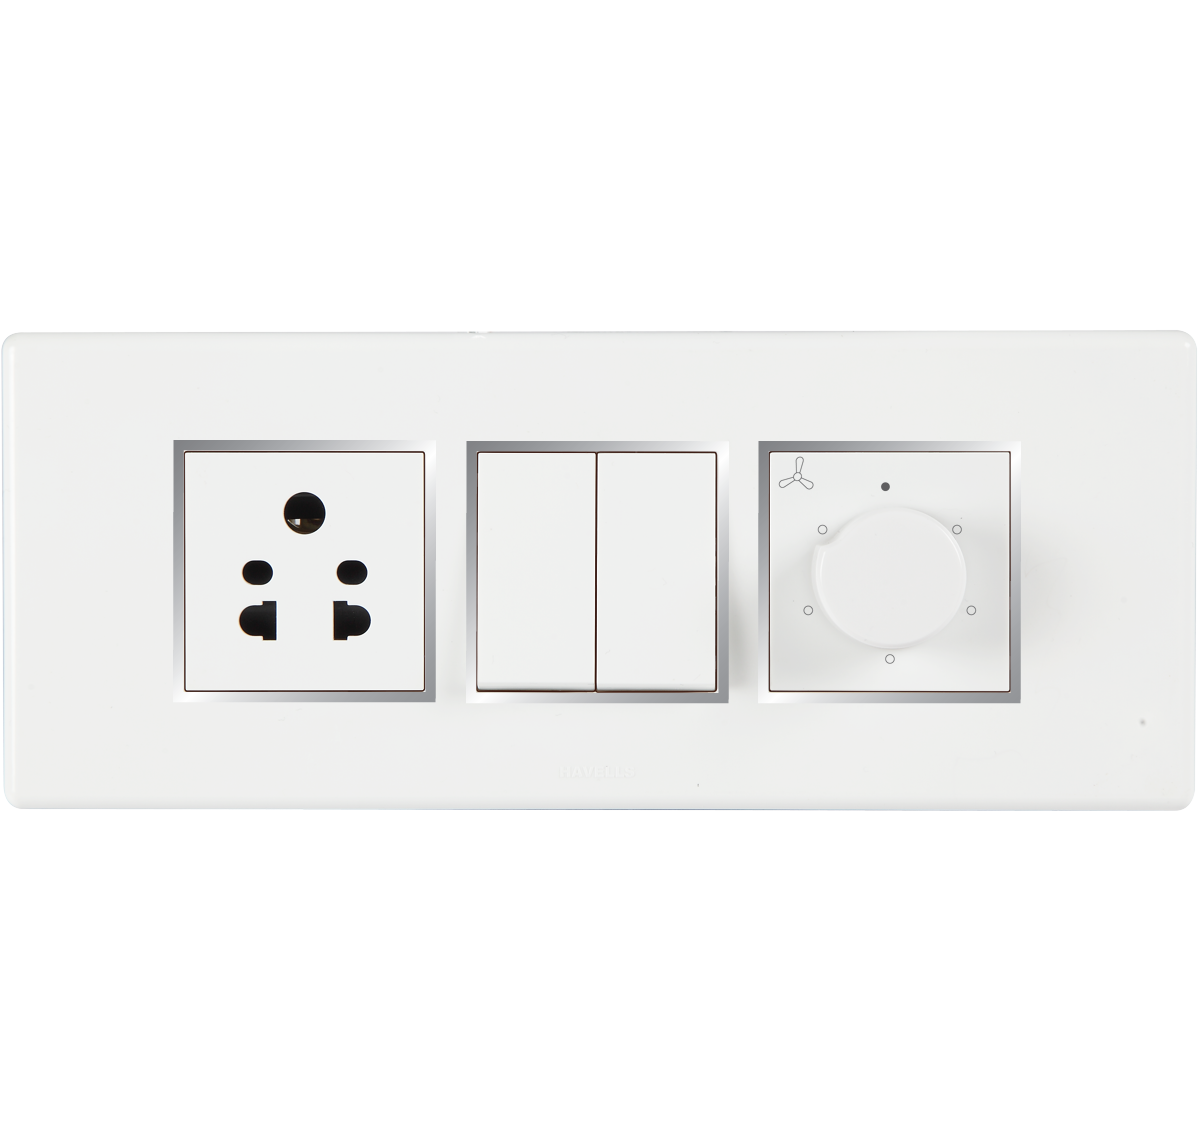 6 M Frameio Front plate